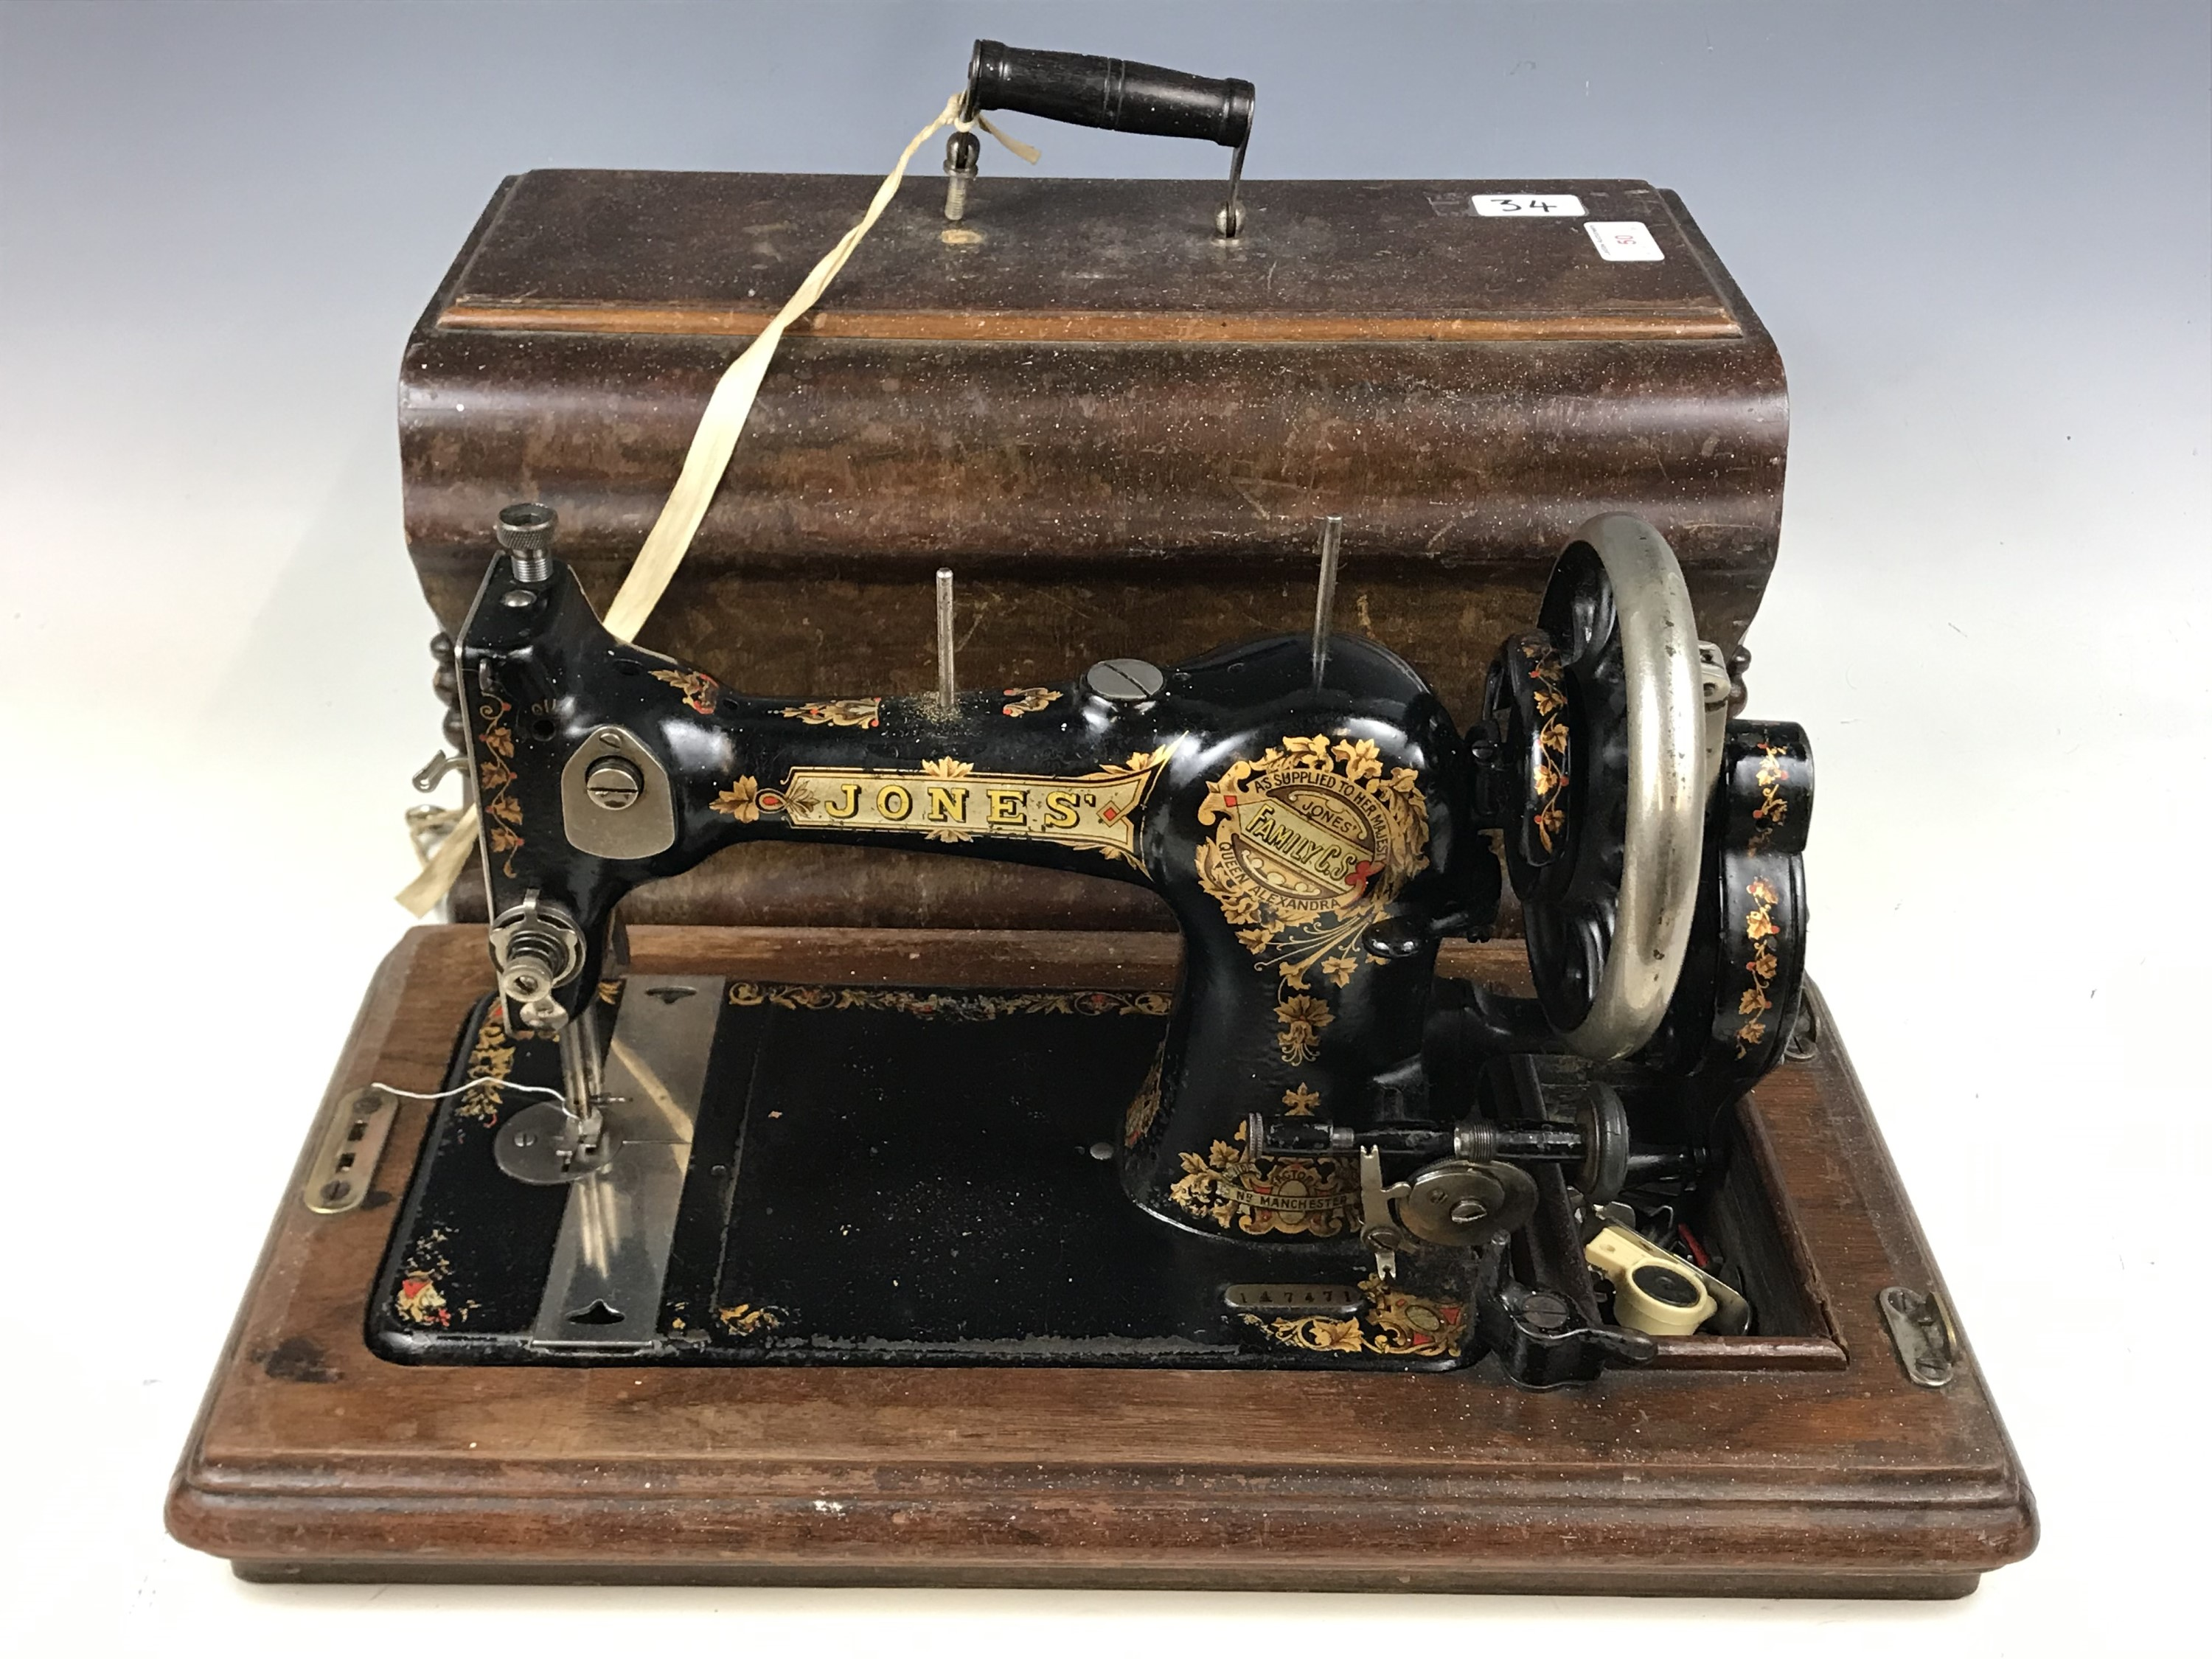 Lot 50 - An early 20th Century Jones Family CS sewing machine with case